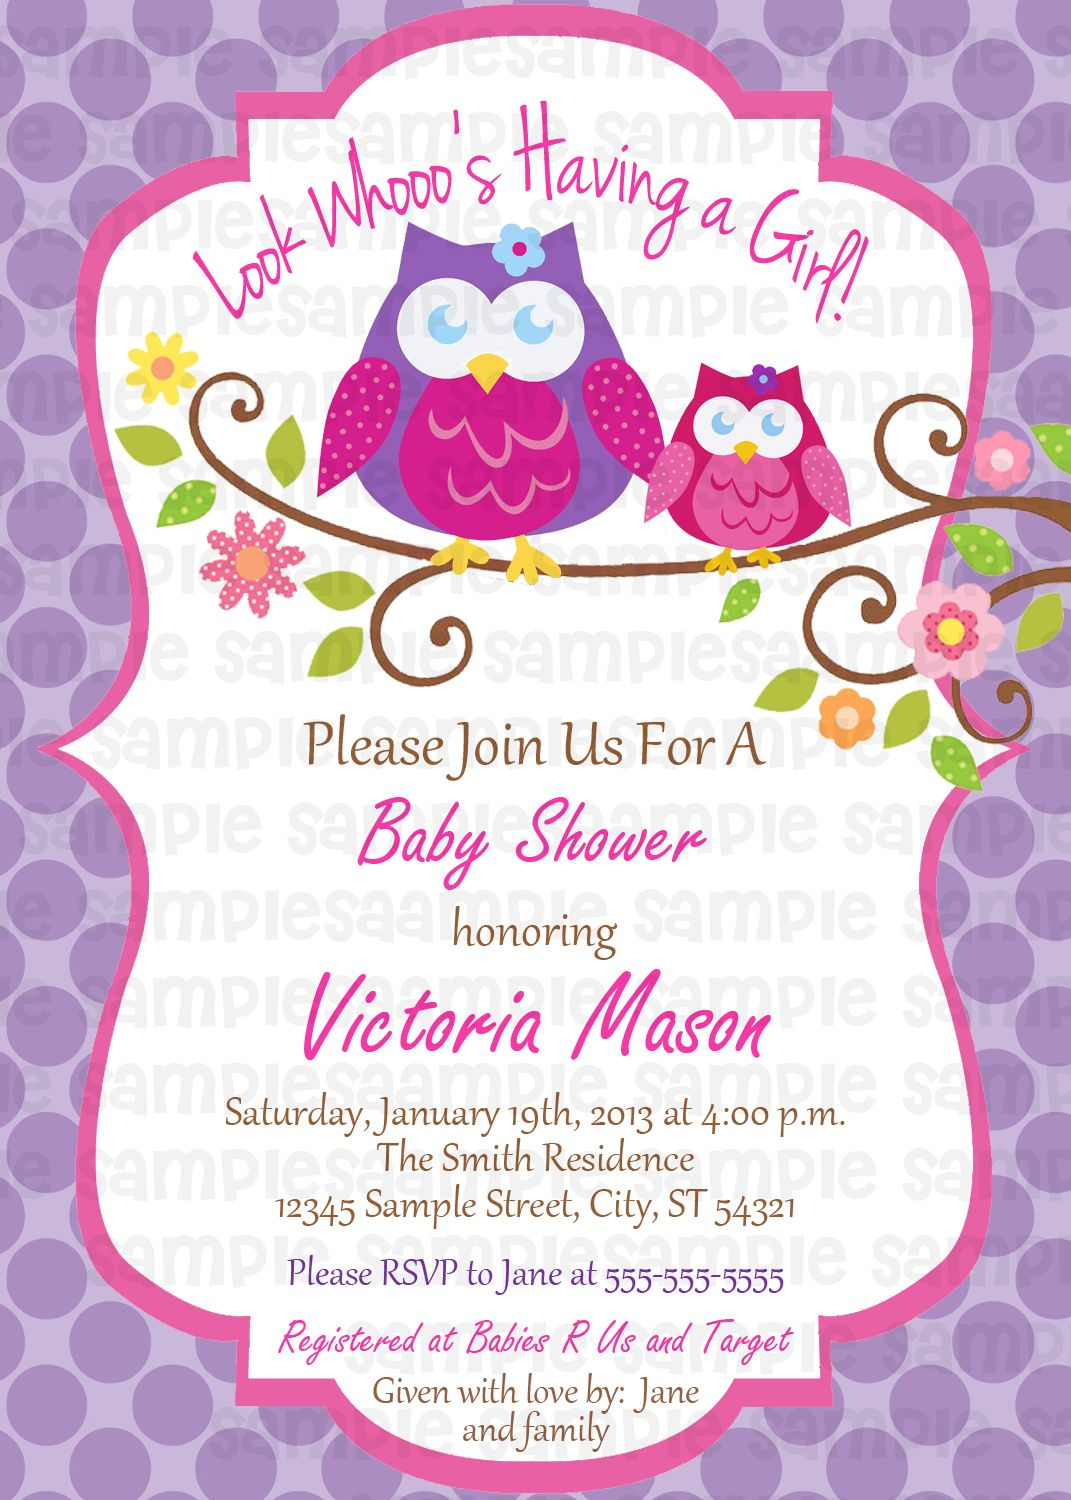 Owl Blossom Baby Shower Digital Invitation $11 | Baby Shower ...